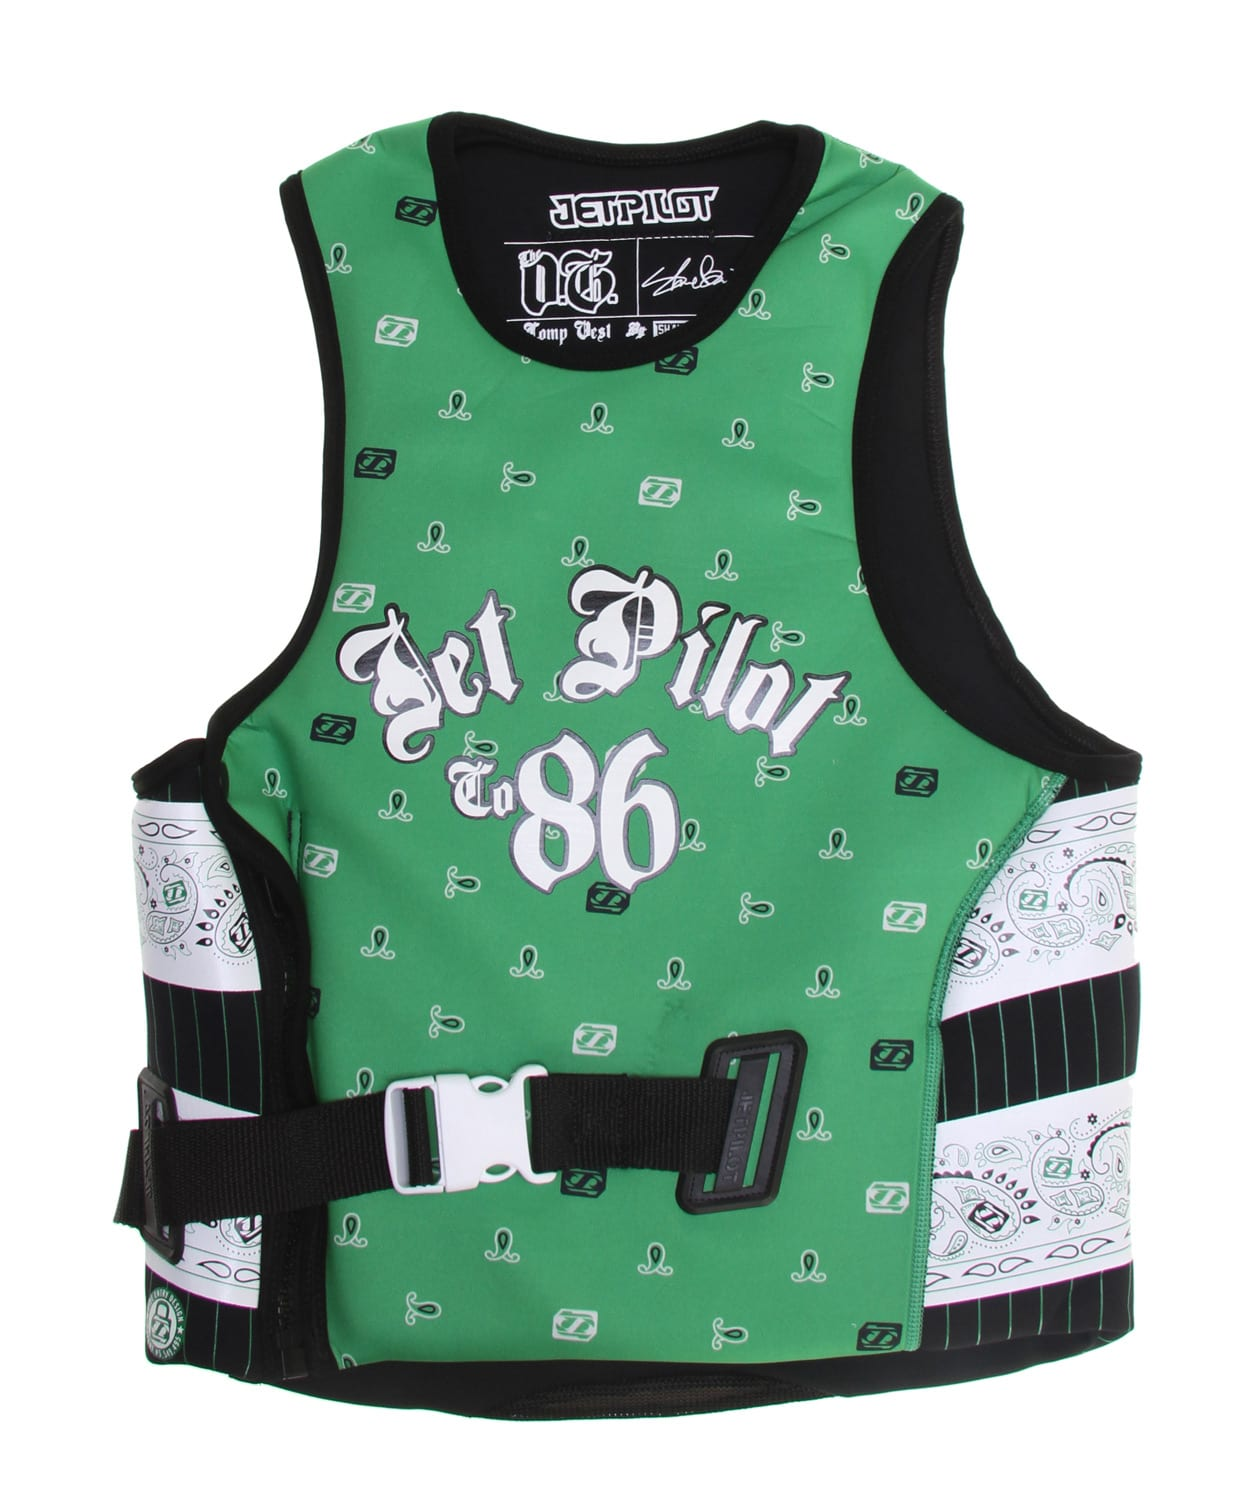 Shop for Jet Pilot OG Comp Wakeboard Vest w/ Utak Lining Green - Men's